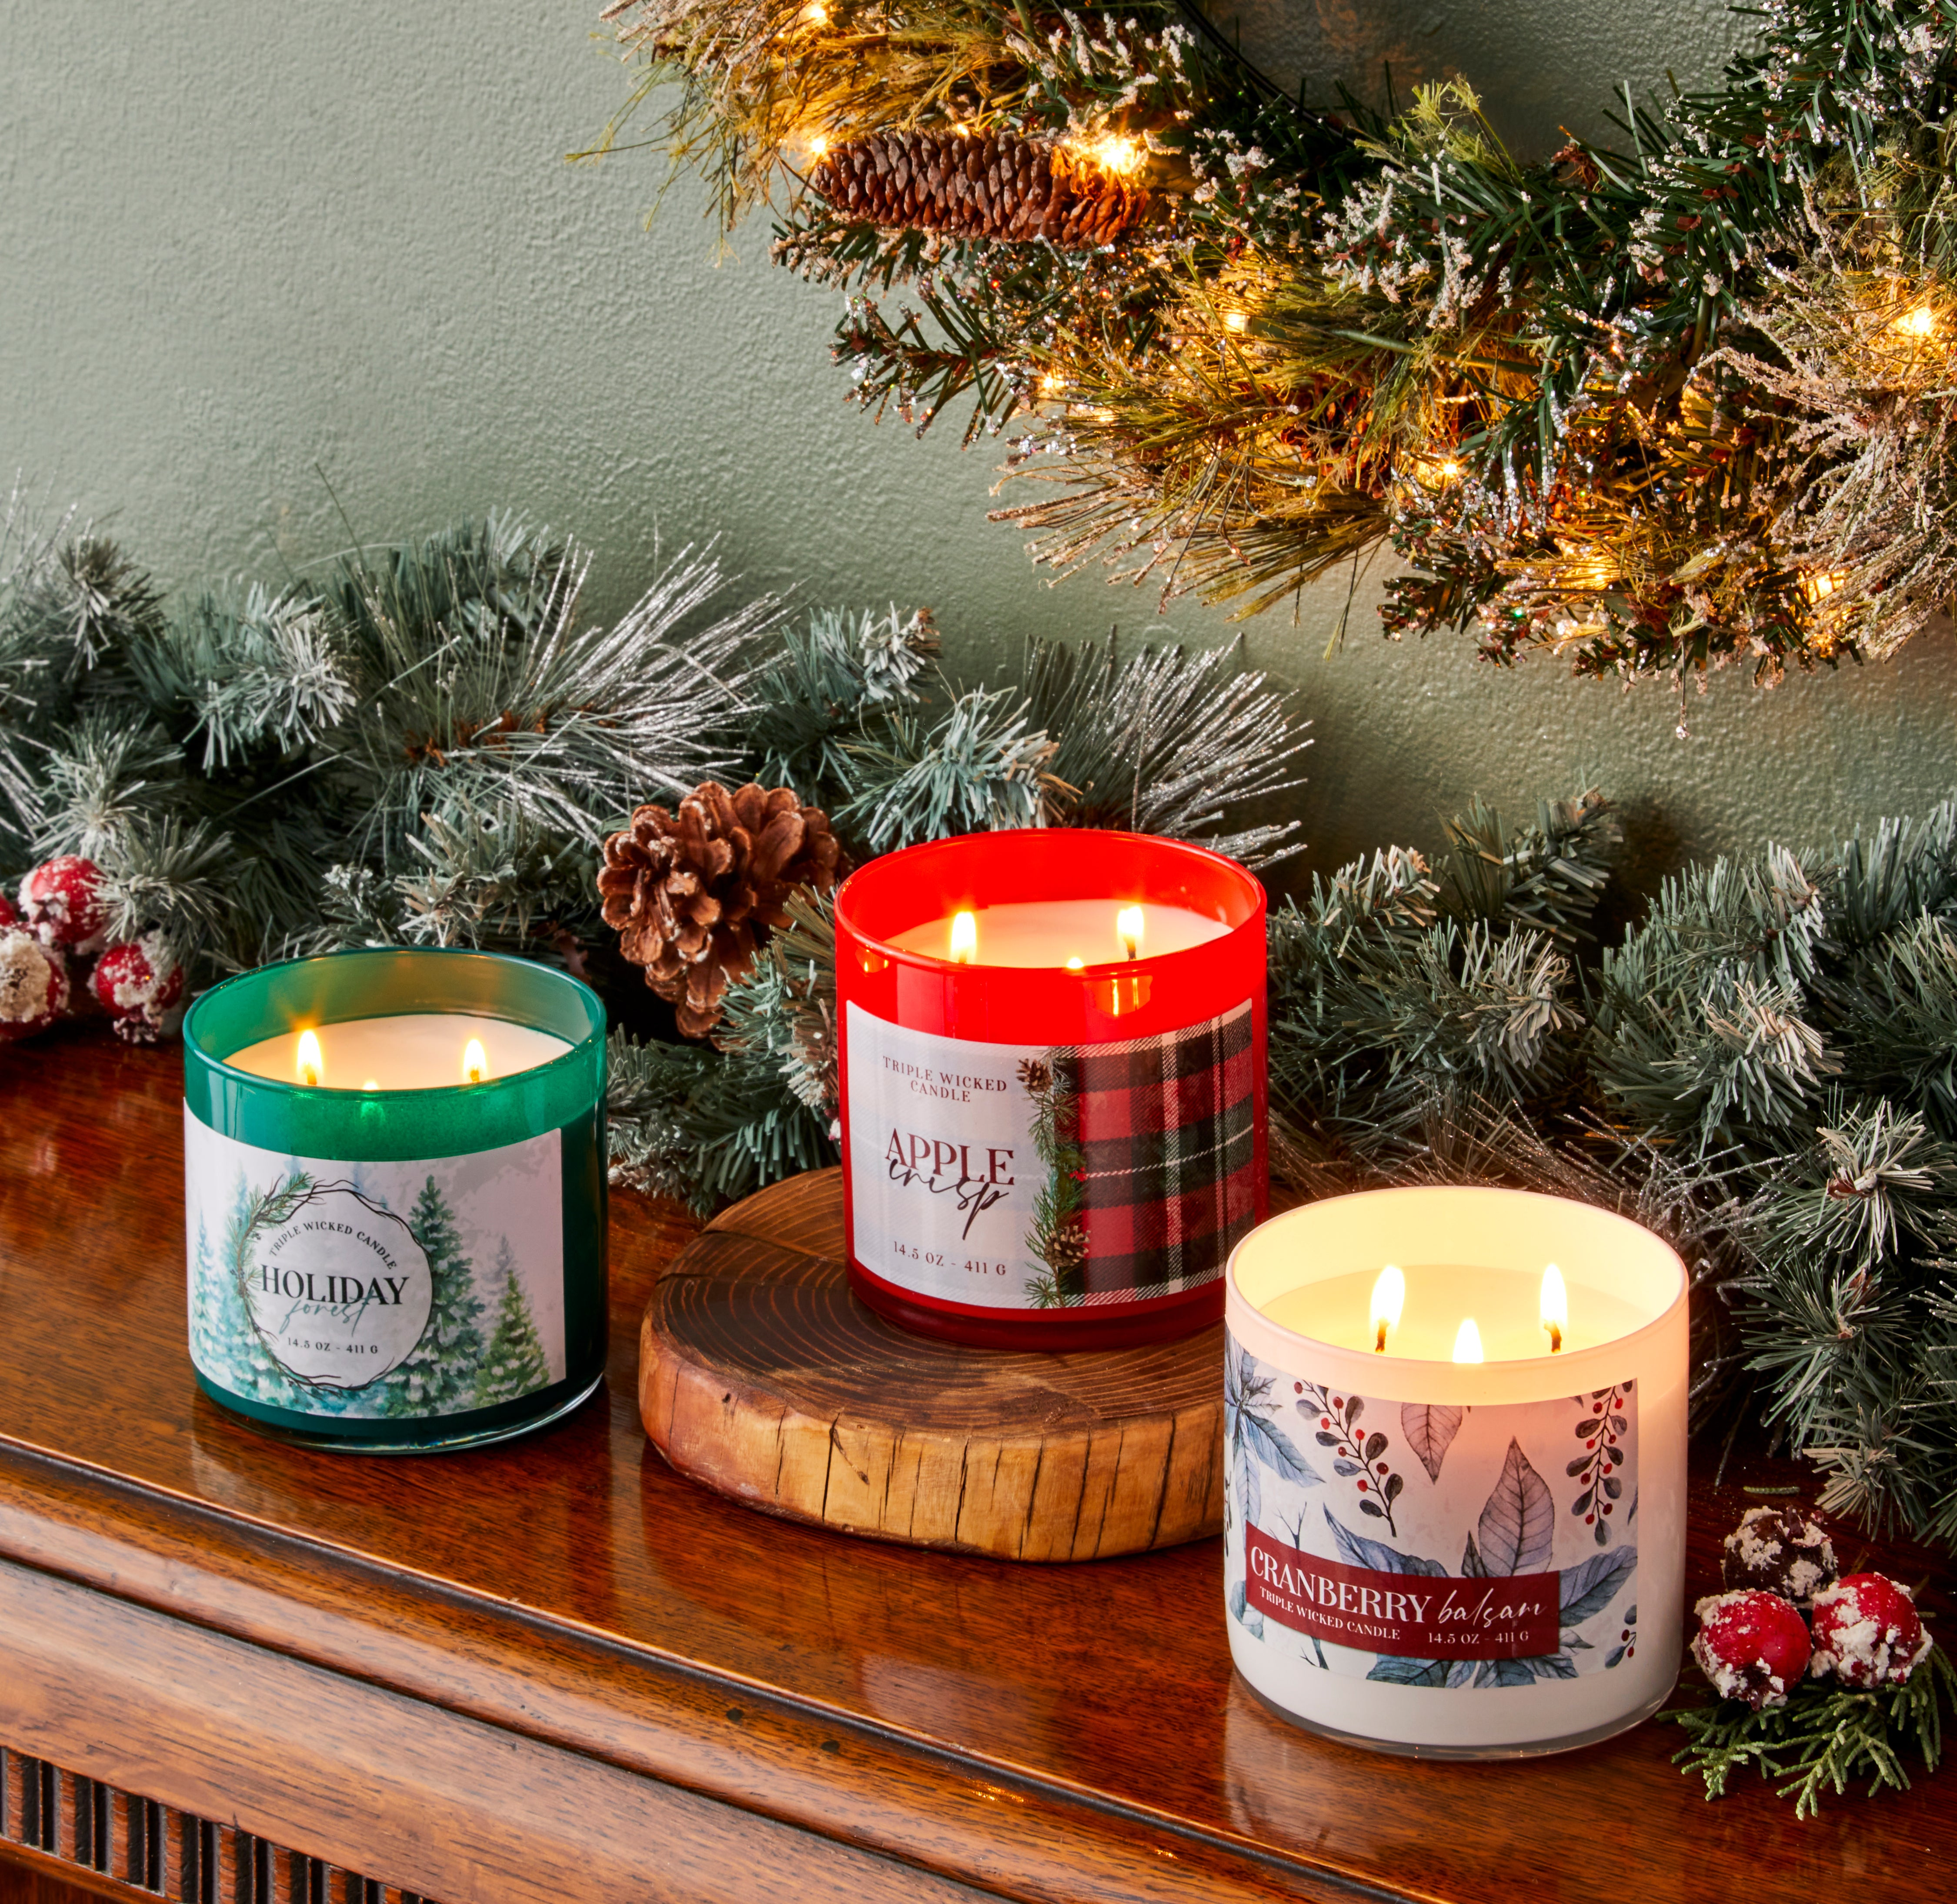 Pier 1 3-Wick Candles